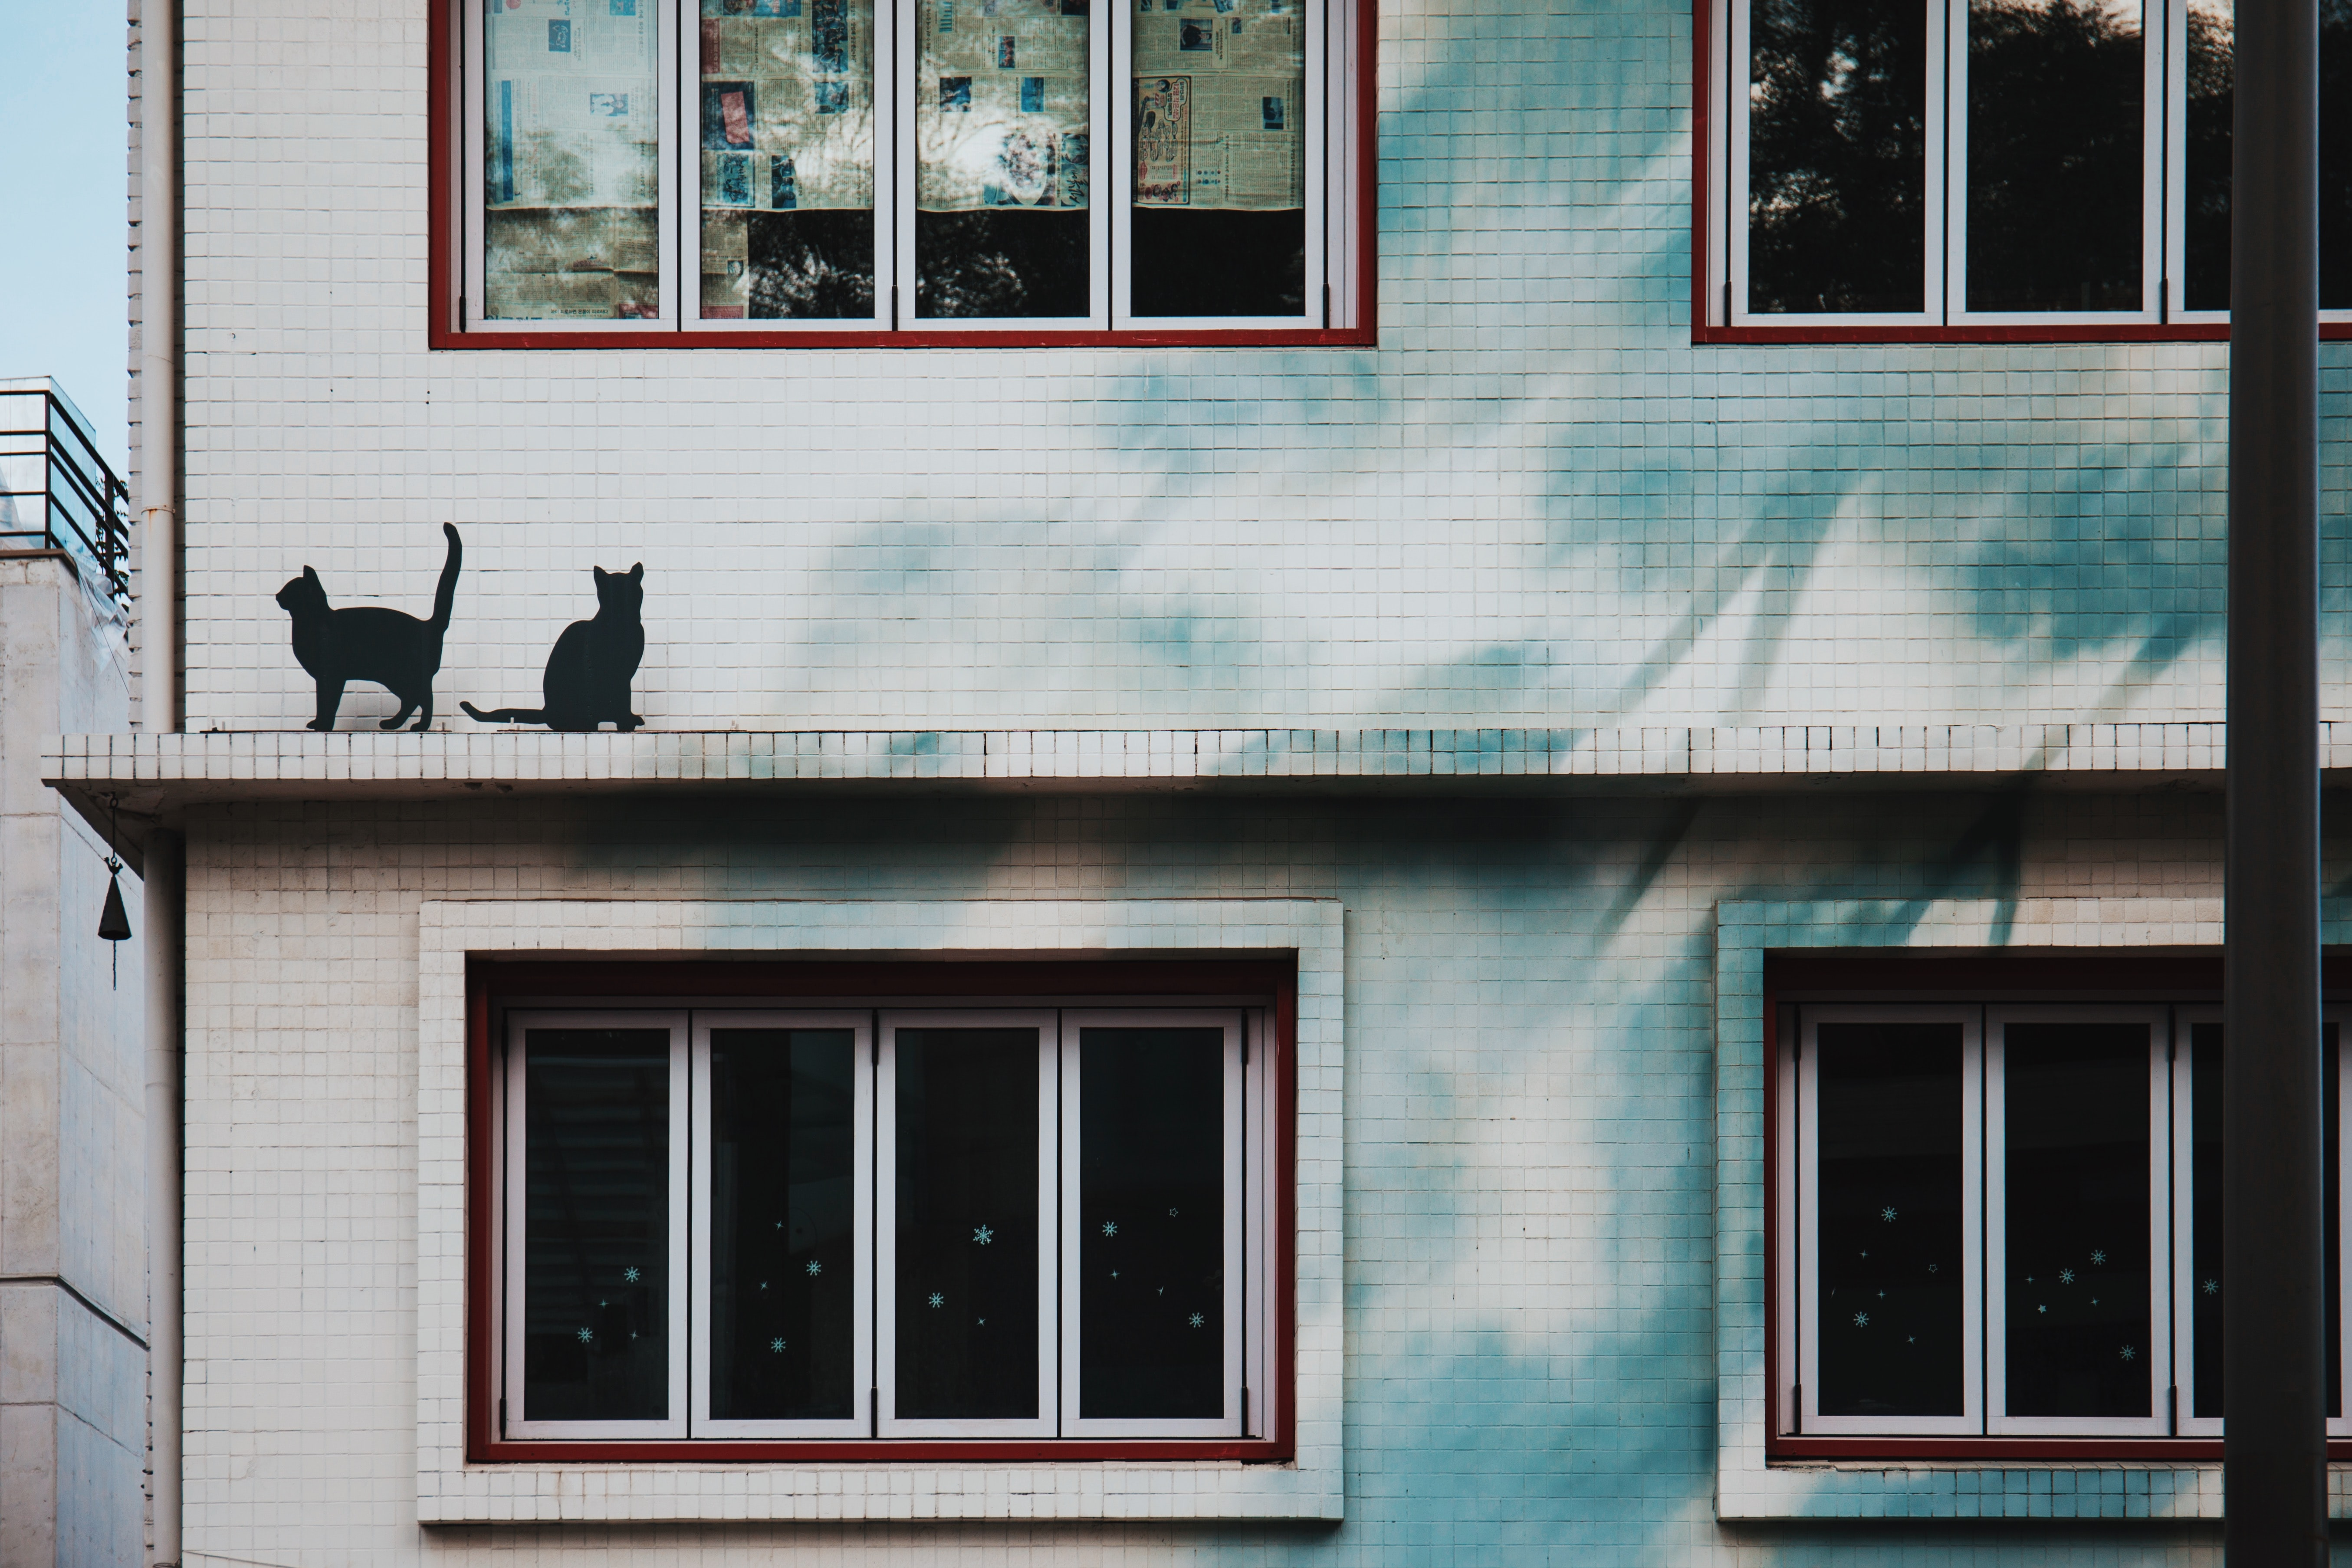 two black cats on white high-rise building